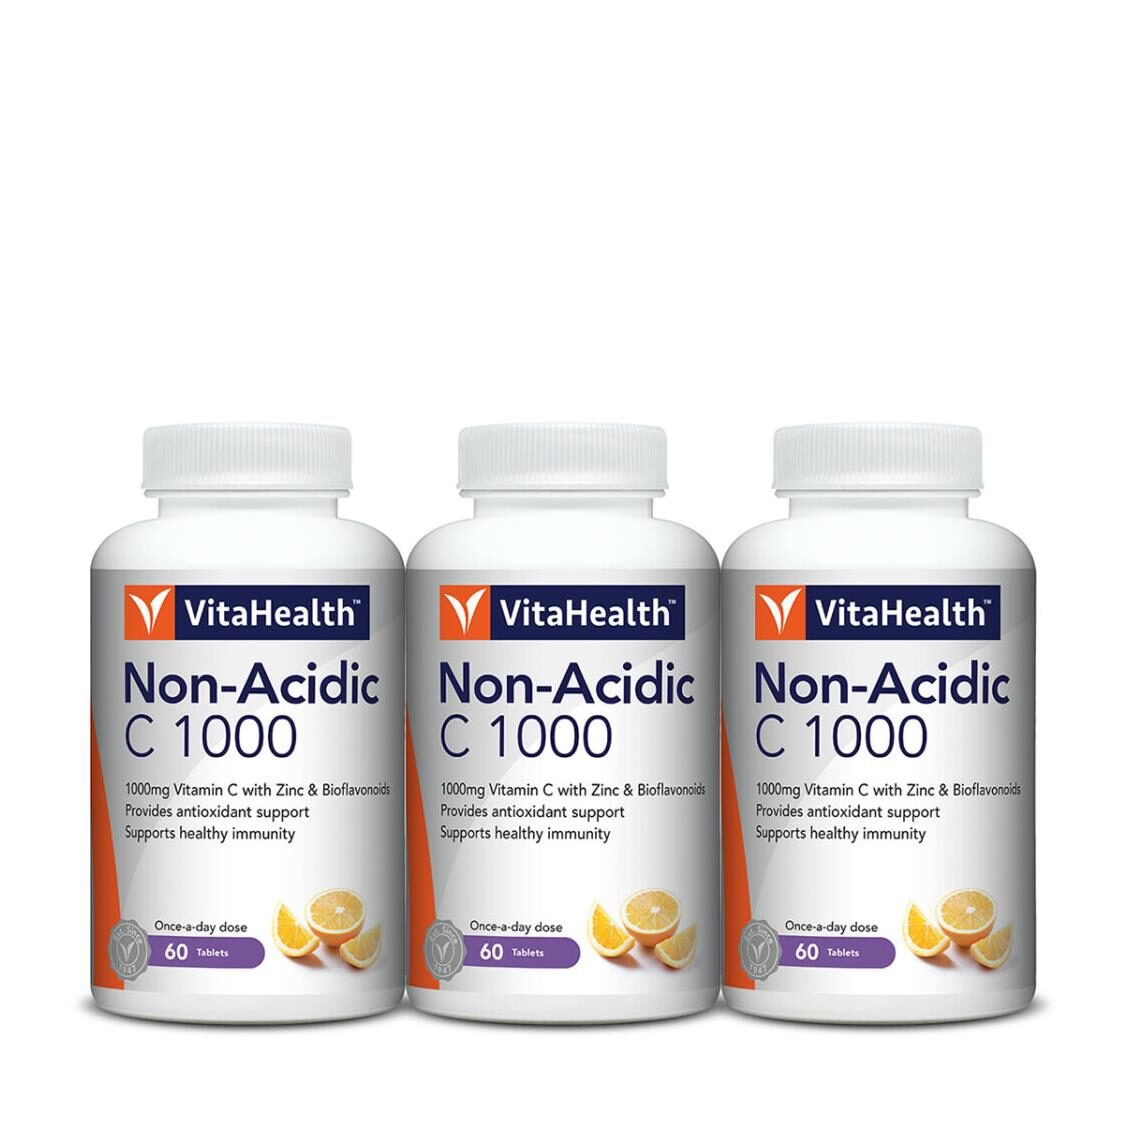 C Vita 1000 Non Acidic 3x60 Tablets